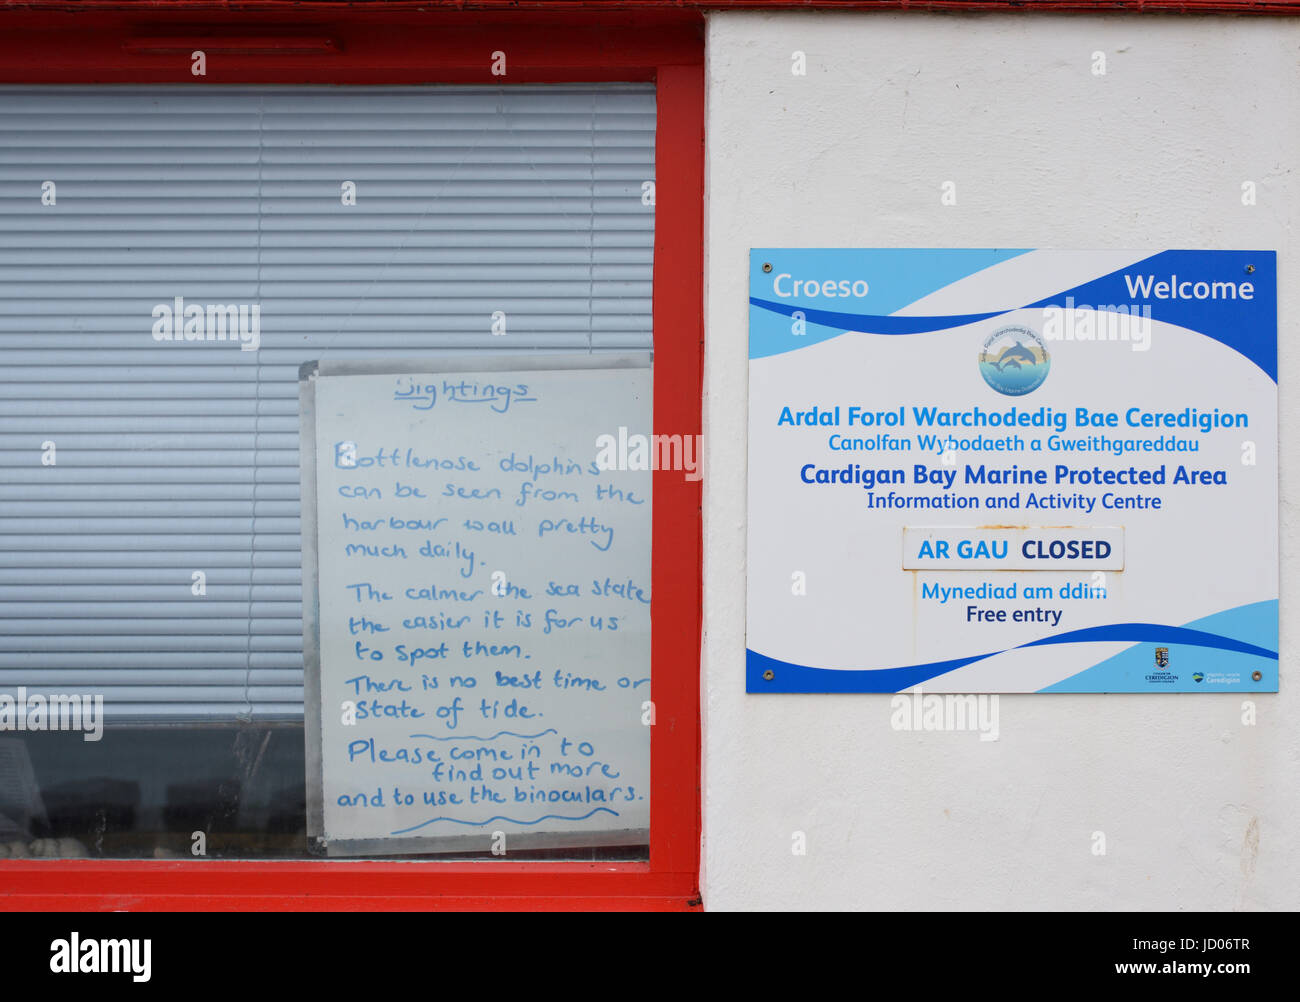 Cardigan bay marine protected area notice on wall and handwritten notice in window new quay wales - Stock Image